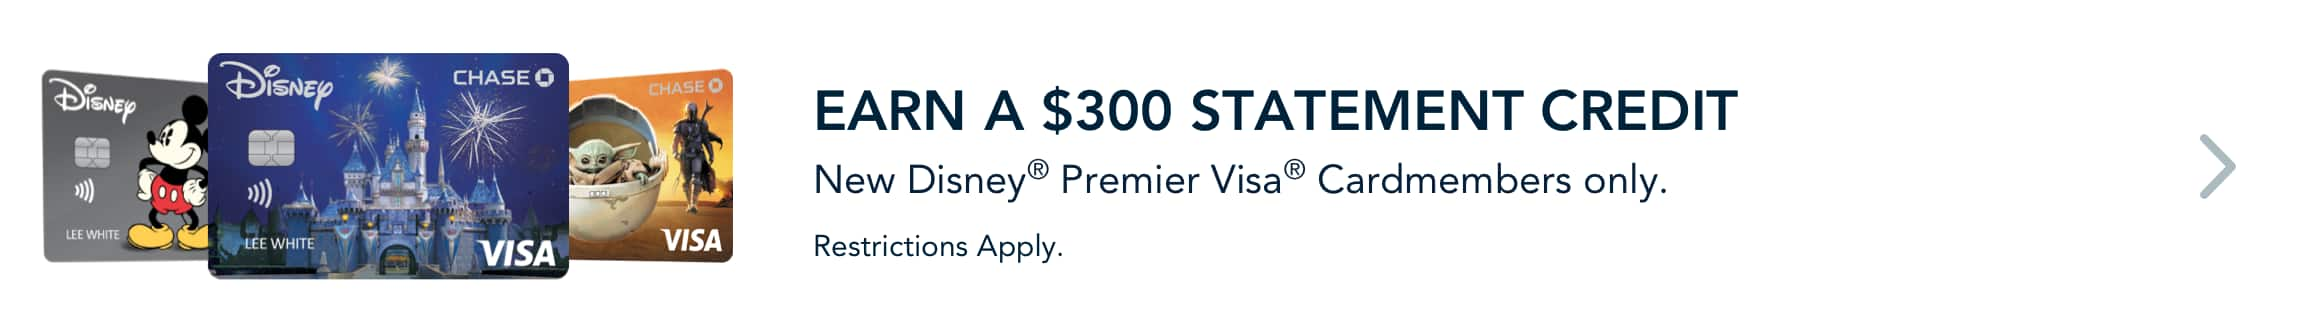 Earn $300 statement credit with a new Disney Premier Visa Card. Restrictions apply. Learn More